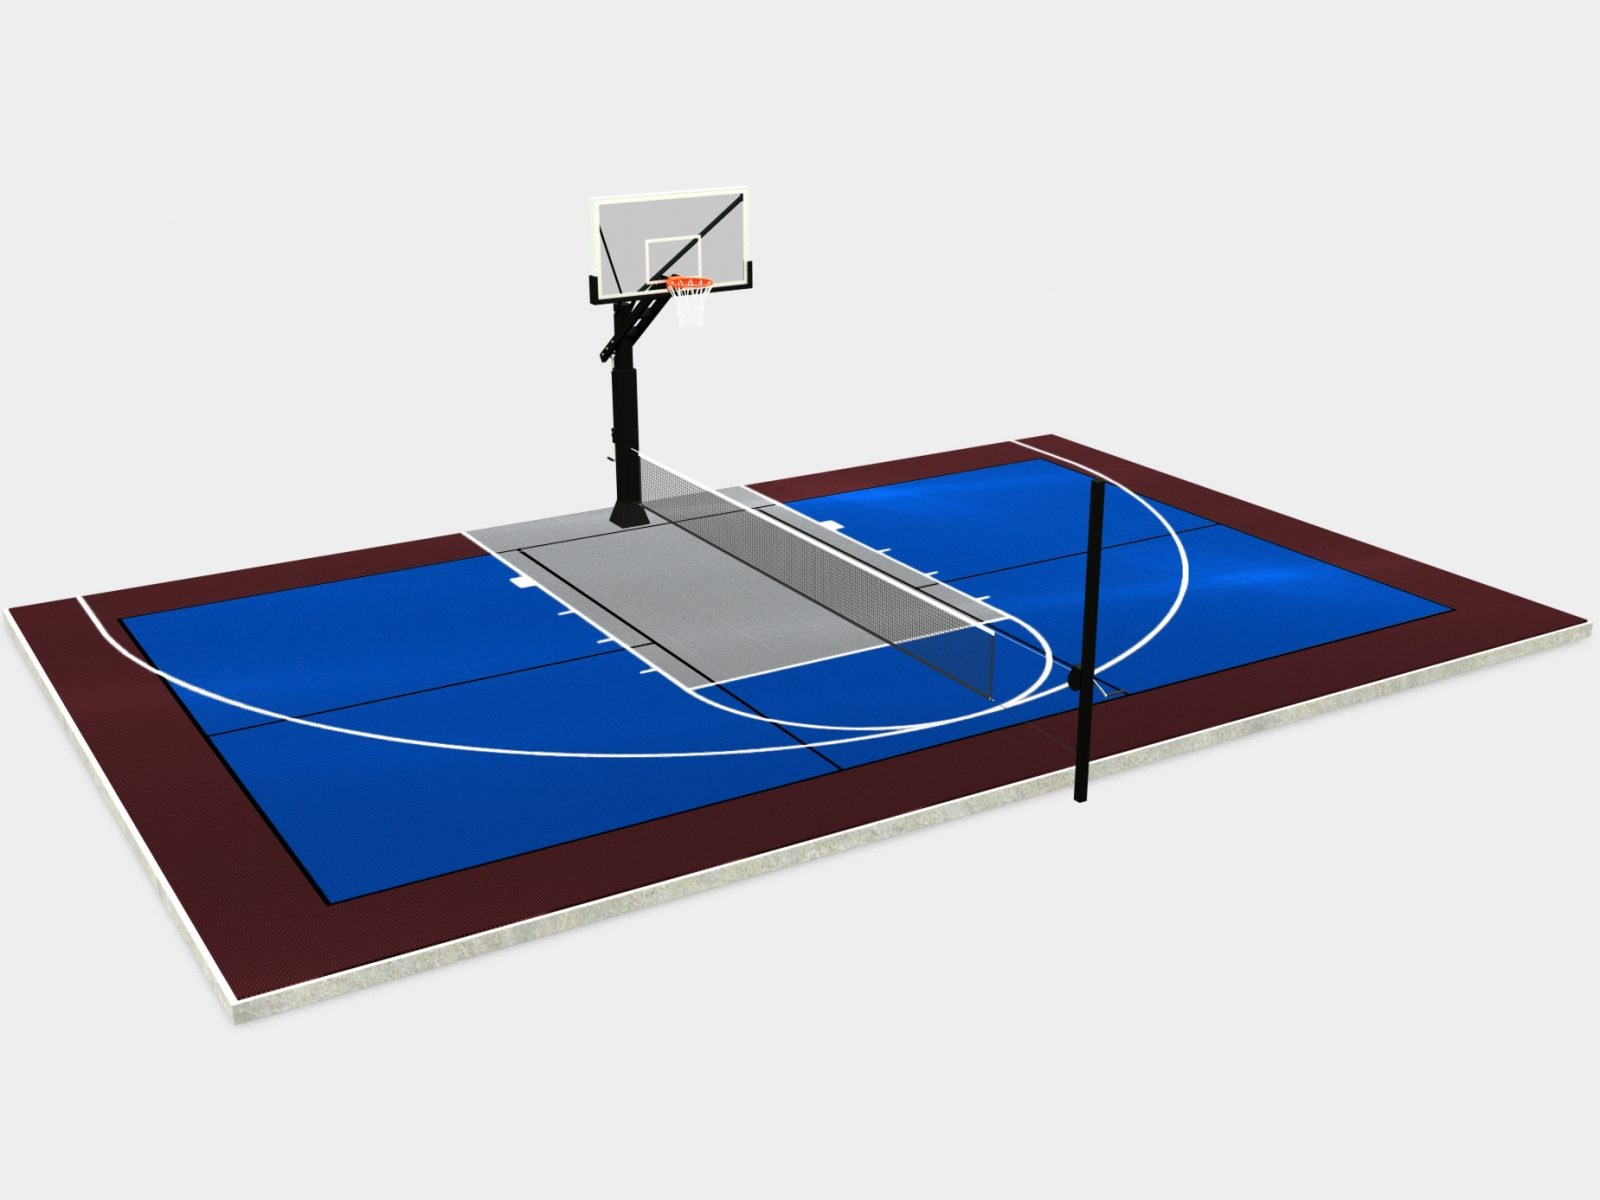 44' x 28' Half Multi-Court with Components